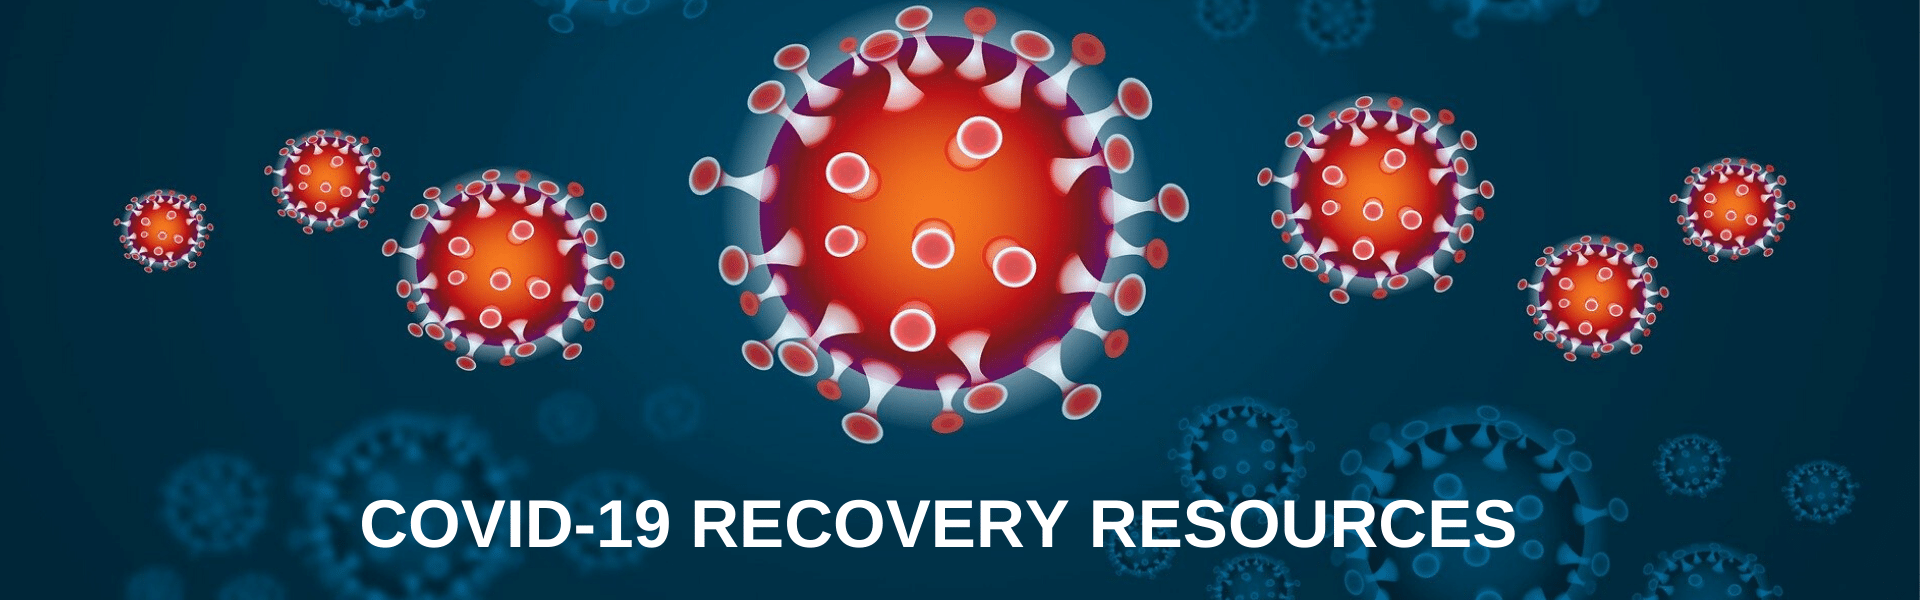 COVID-19 RECOVERY RESOURCES